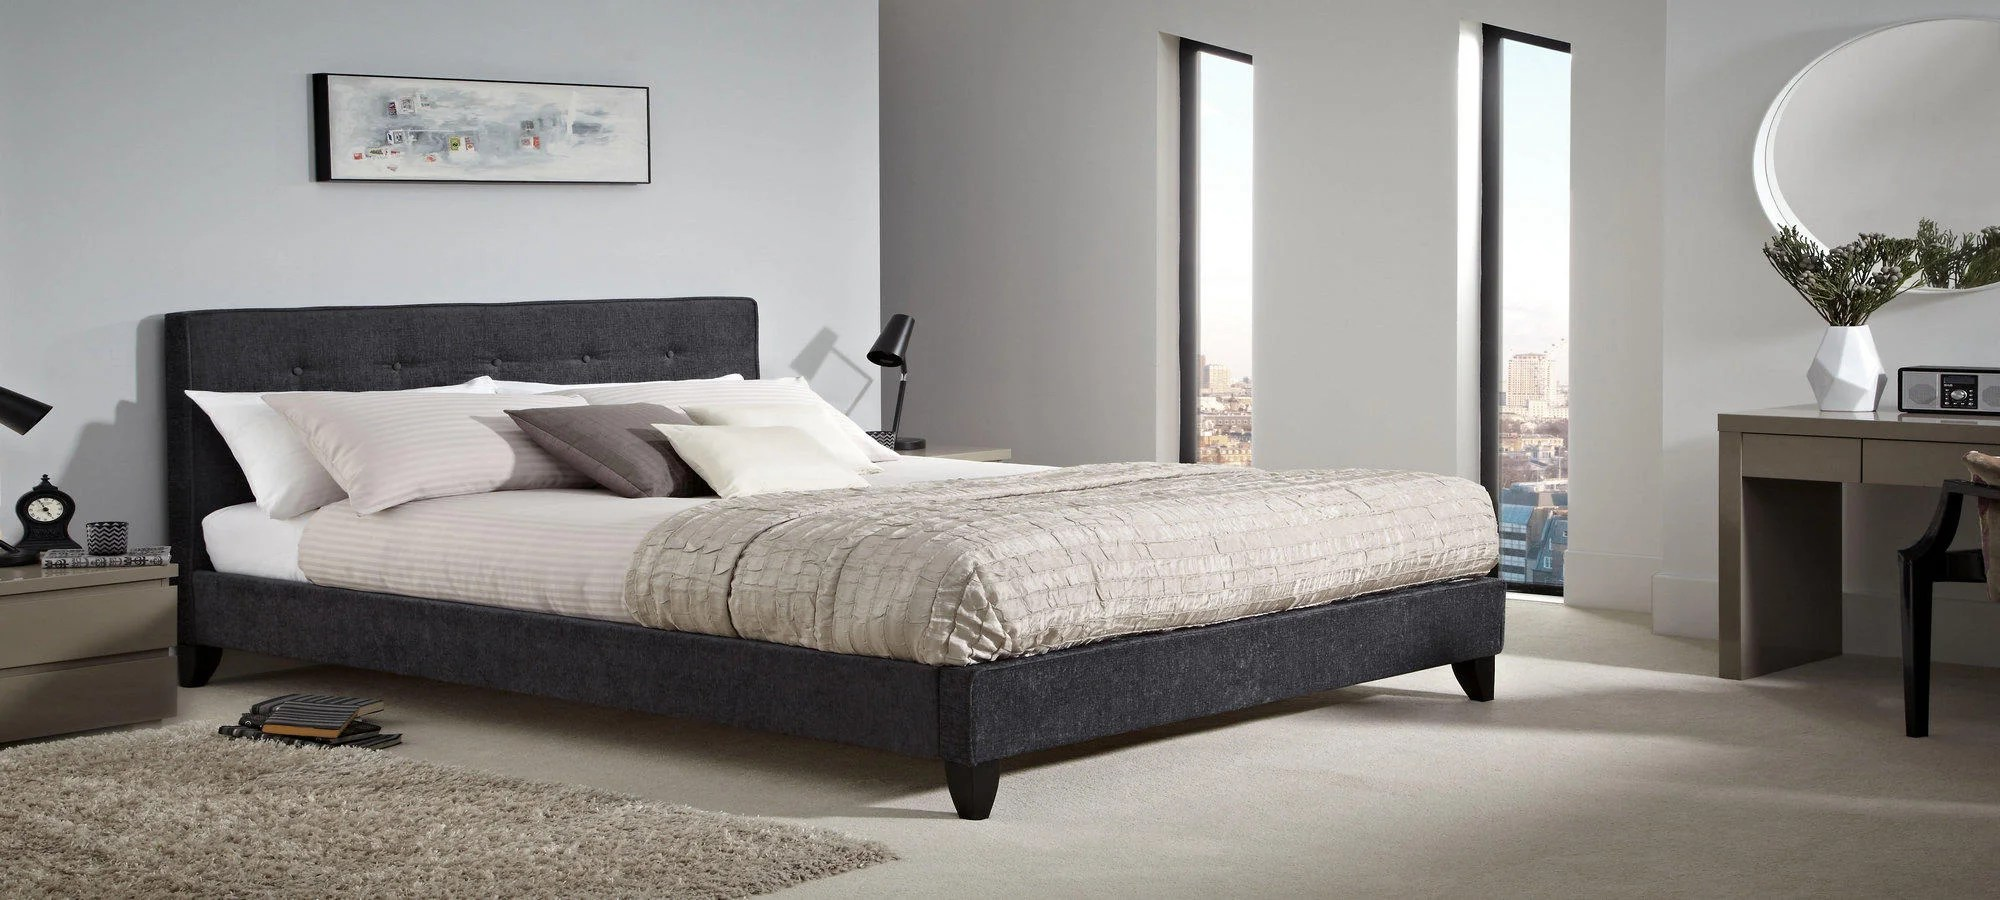 King Size Mattress Sale Uk Beechwood Beds Mattresses We Re All About A Great Night S Sleep